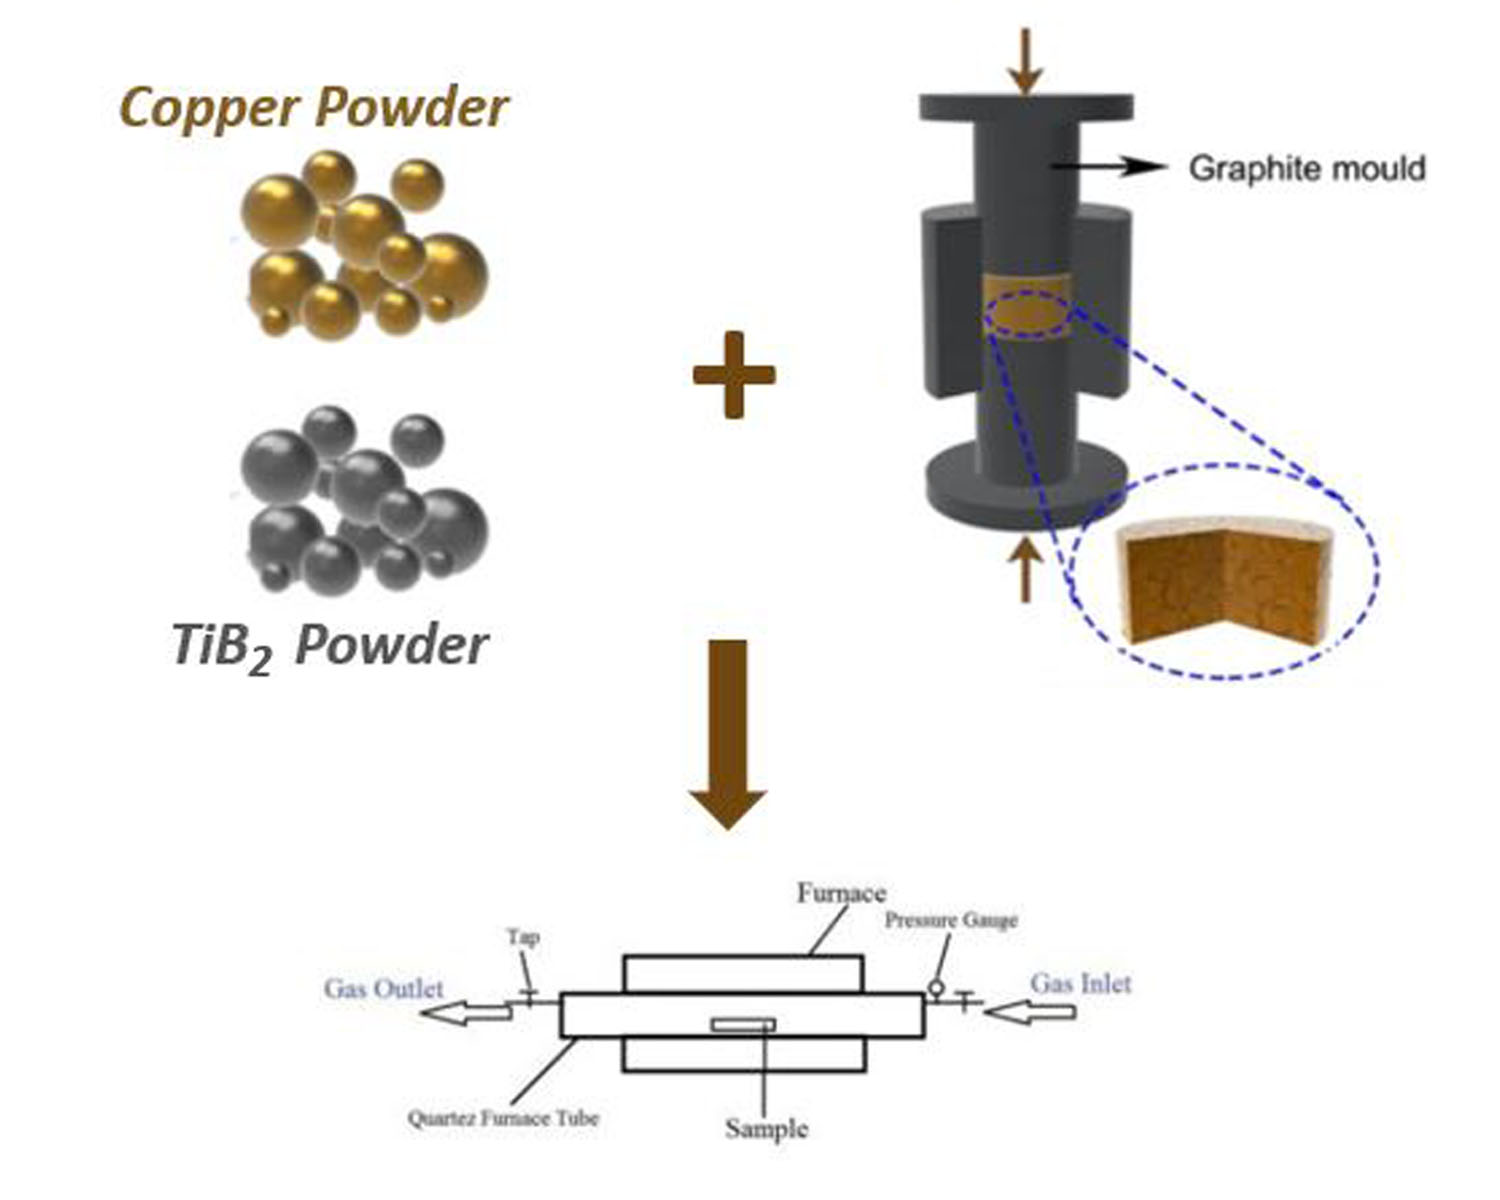 Corrosion and mechanical behavior evaluation of in-situ synthesized Cu-TiB2 nanocomposite